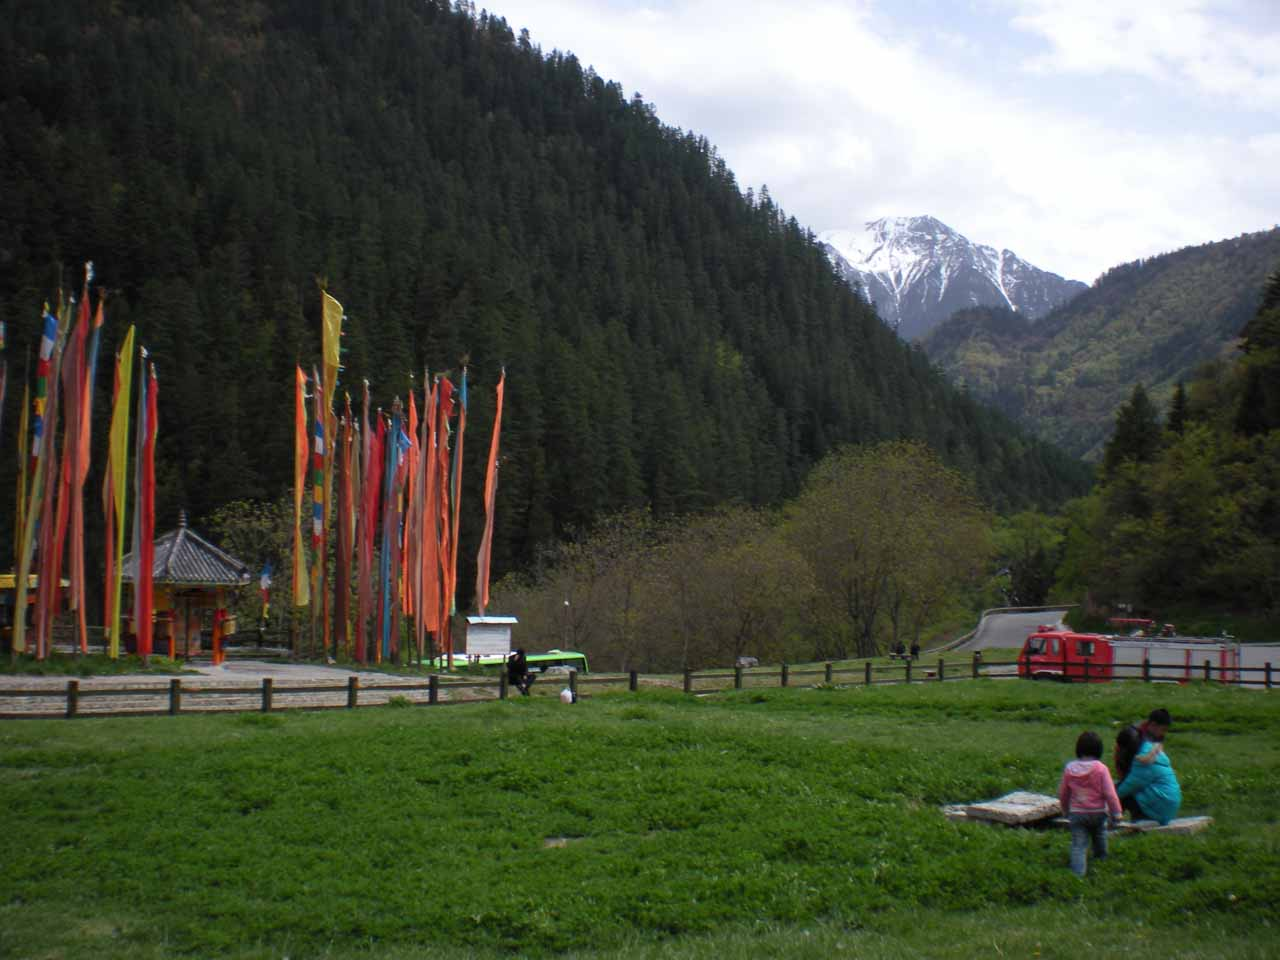 Some people picnicking on the lawn fronting the Shuzheng Village